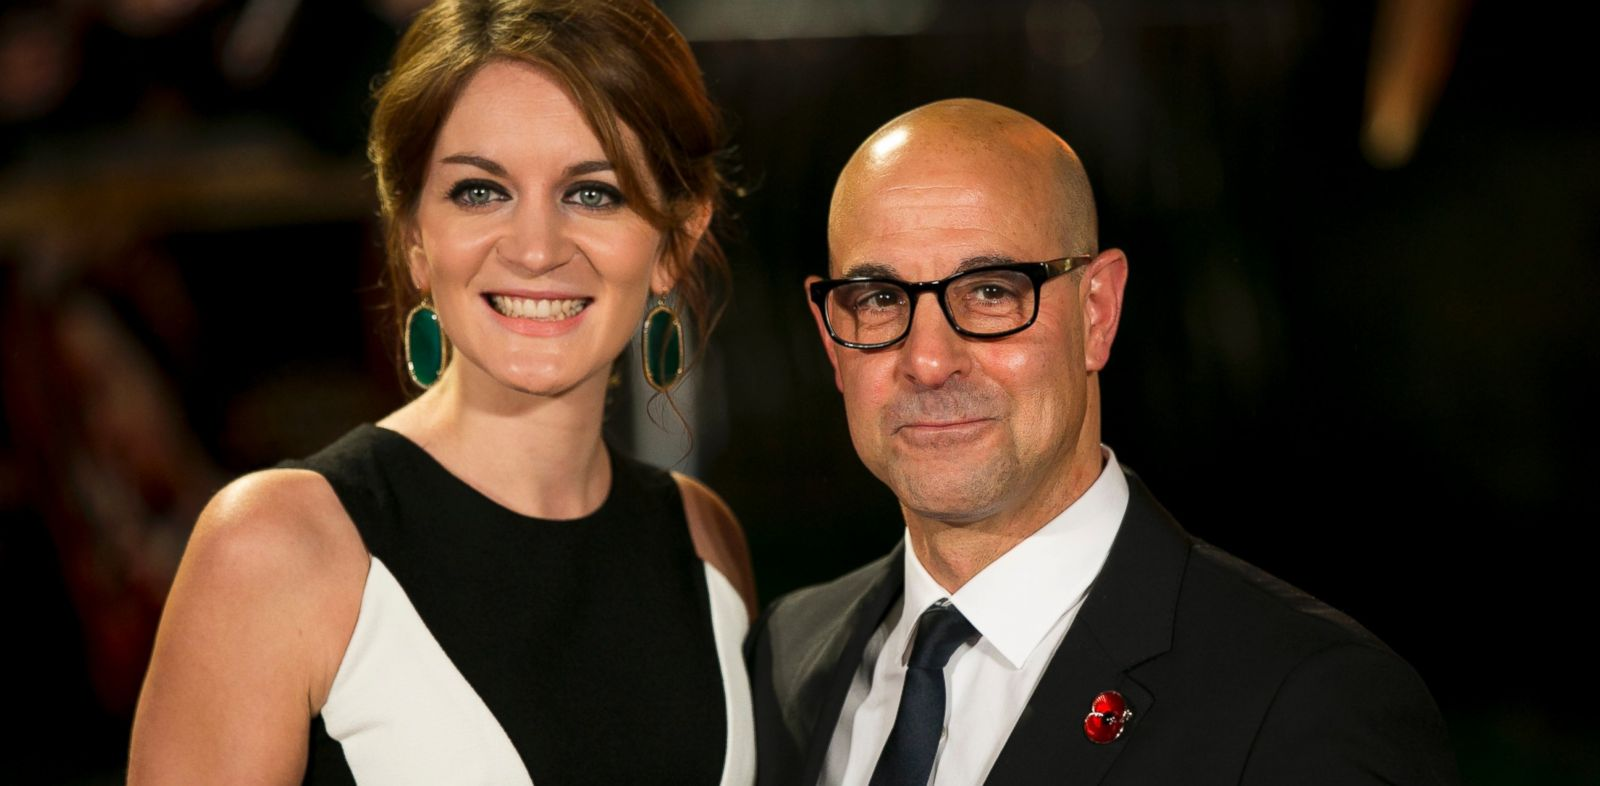 PHOTO: Stanley Tucci and his wife Felicity Blunt